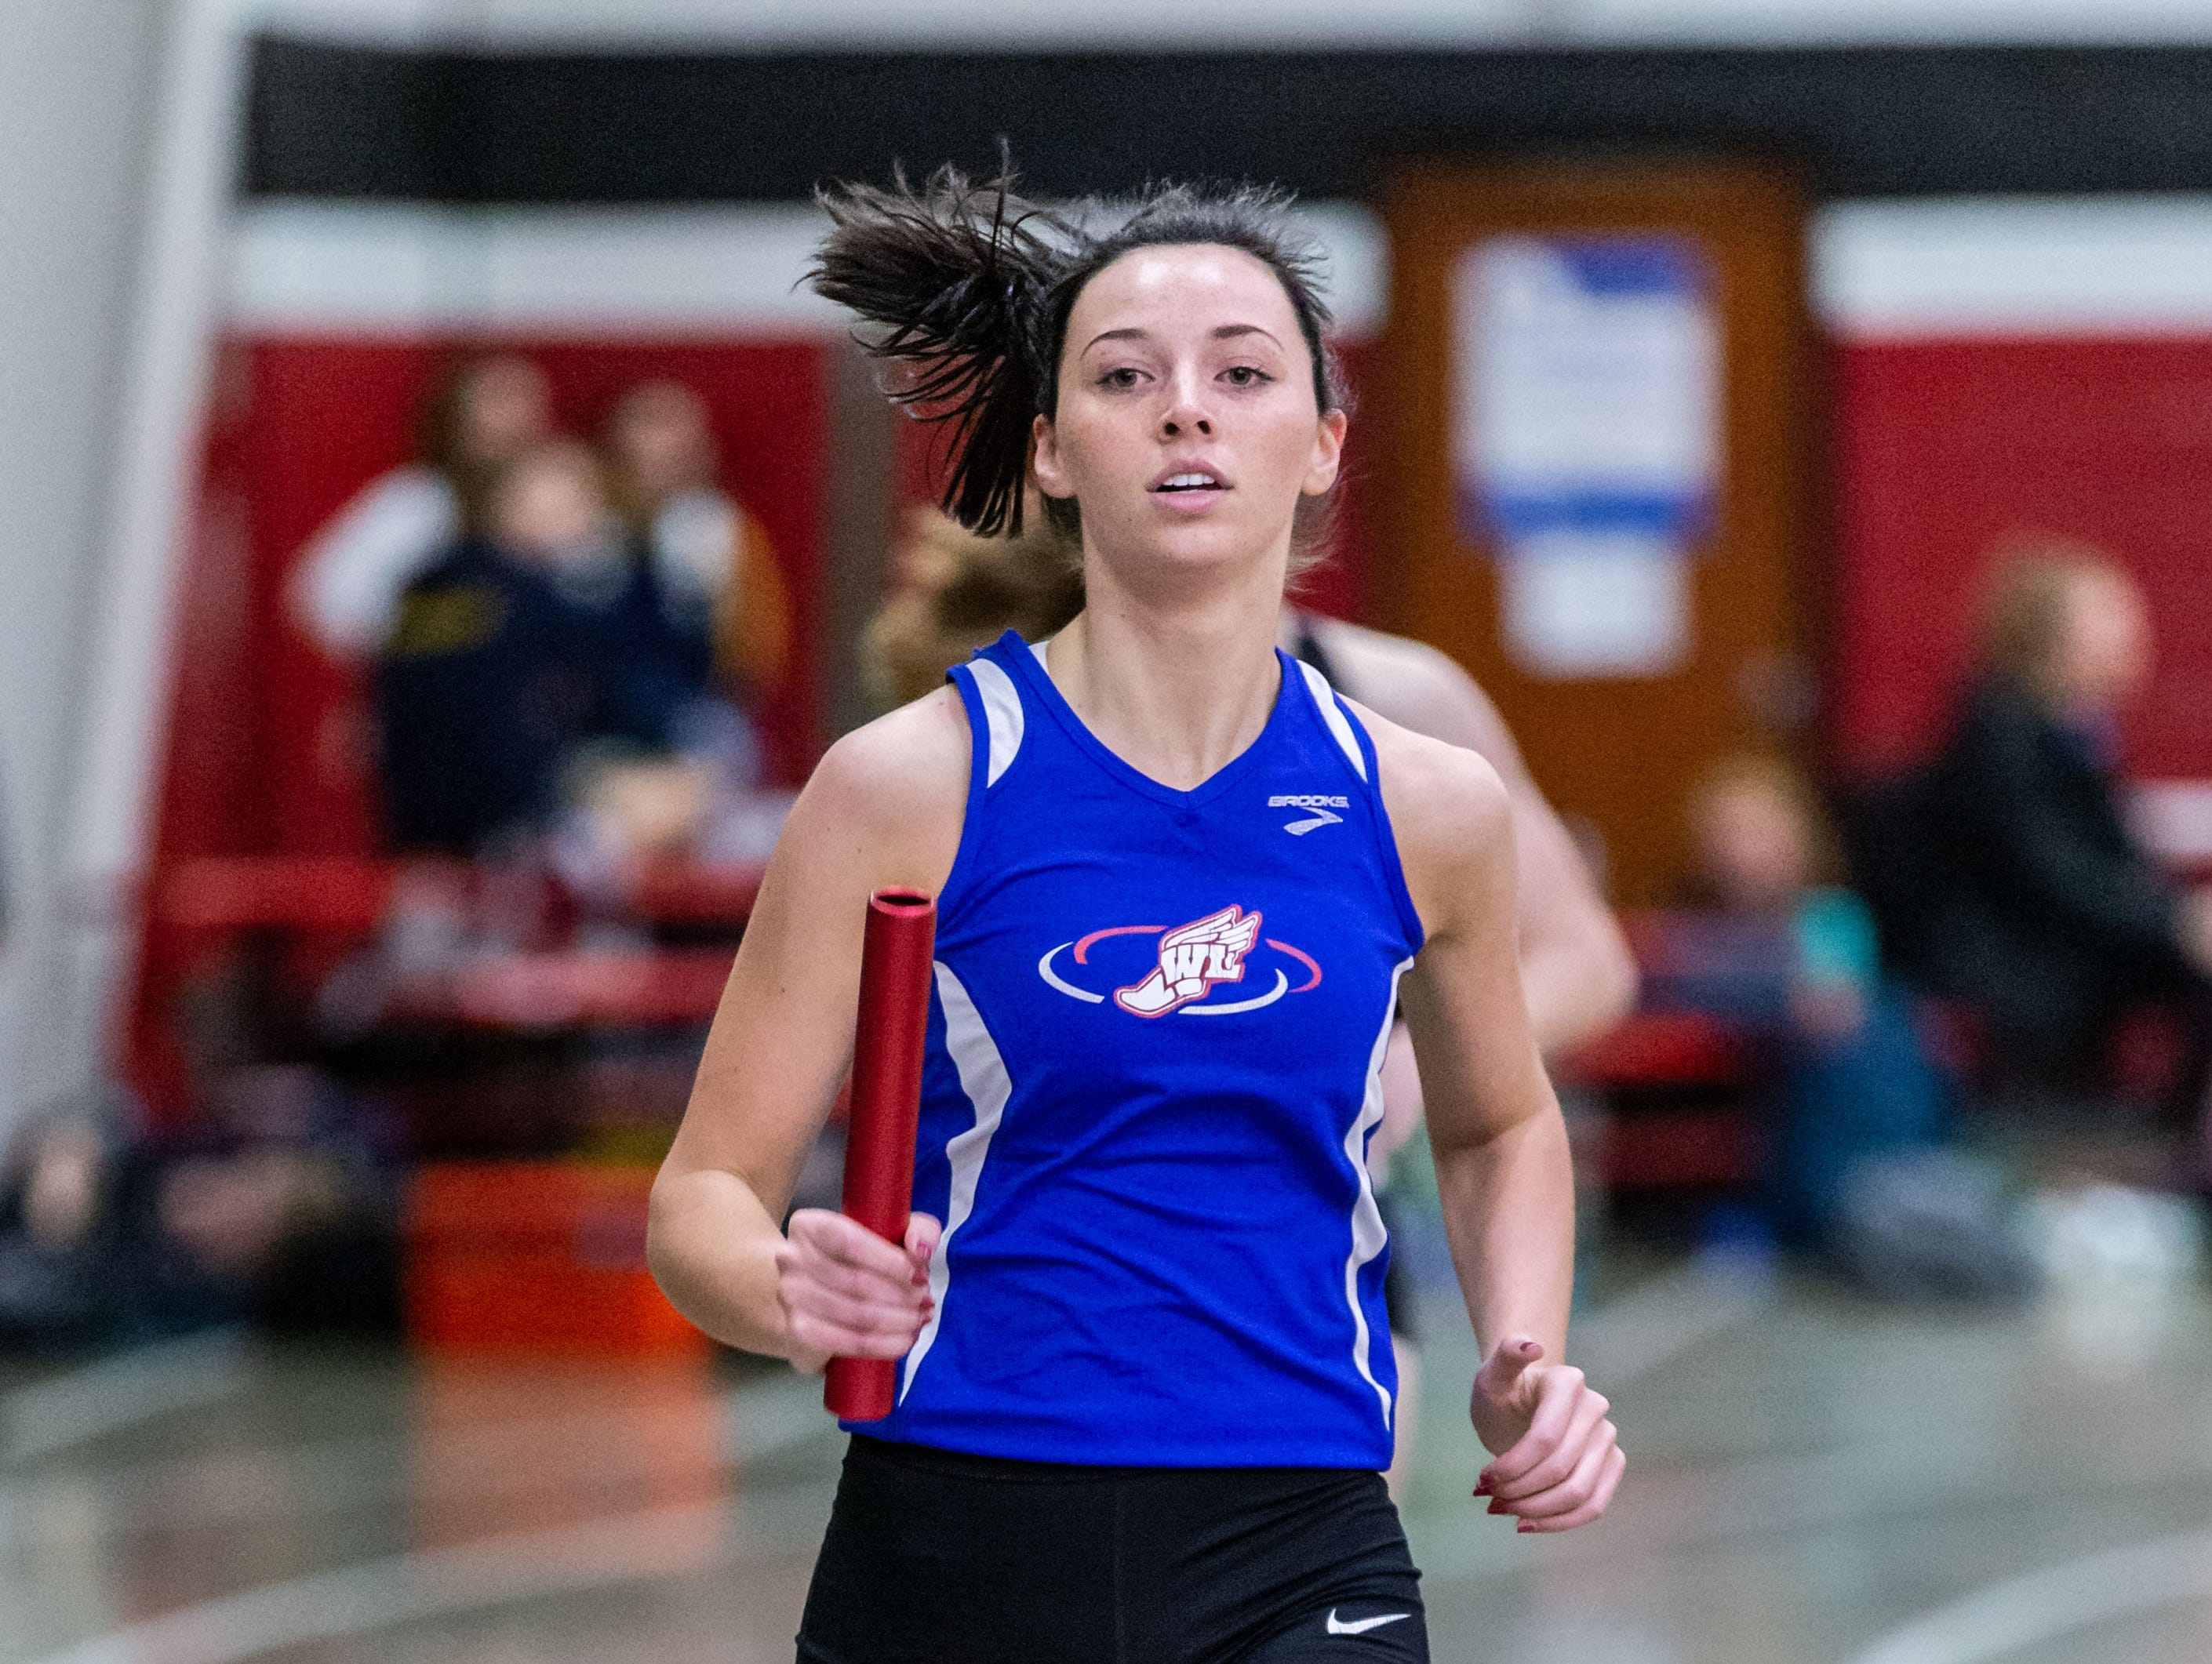 Wisconsin Lutheran's Grace Beyer competes in the 4x440 yard relay at the Peter Rempe Cardinal Relays hosted by Waukesha South on Thursday, March 21, 2019.